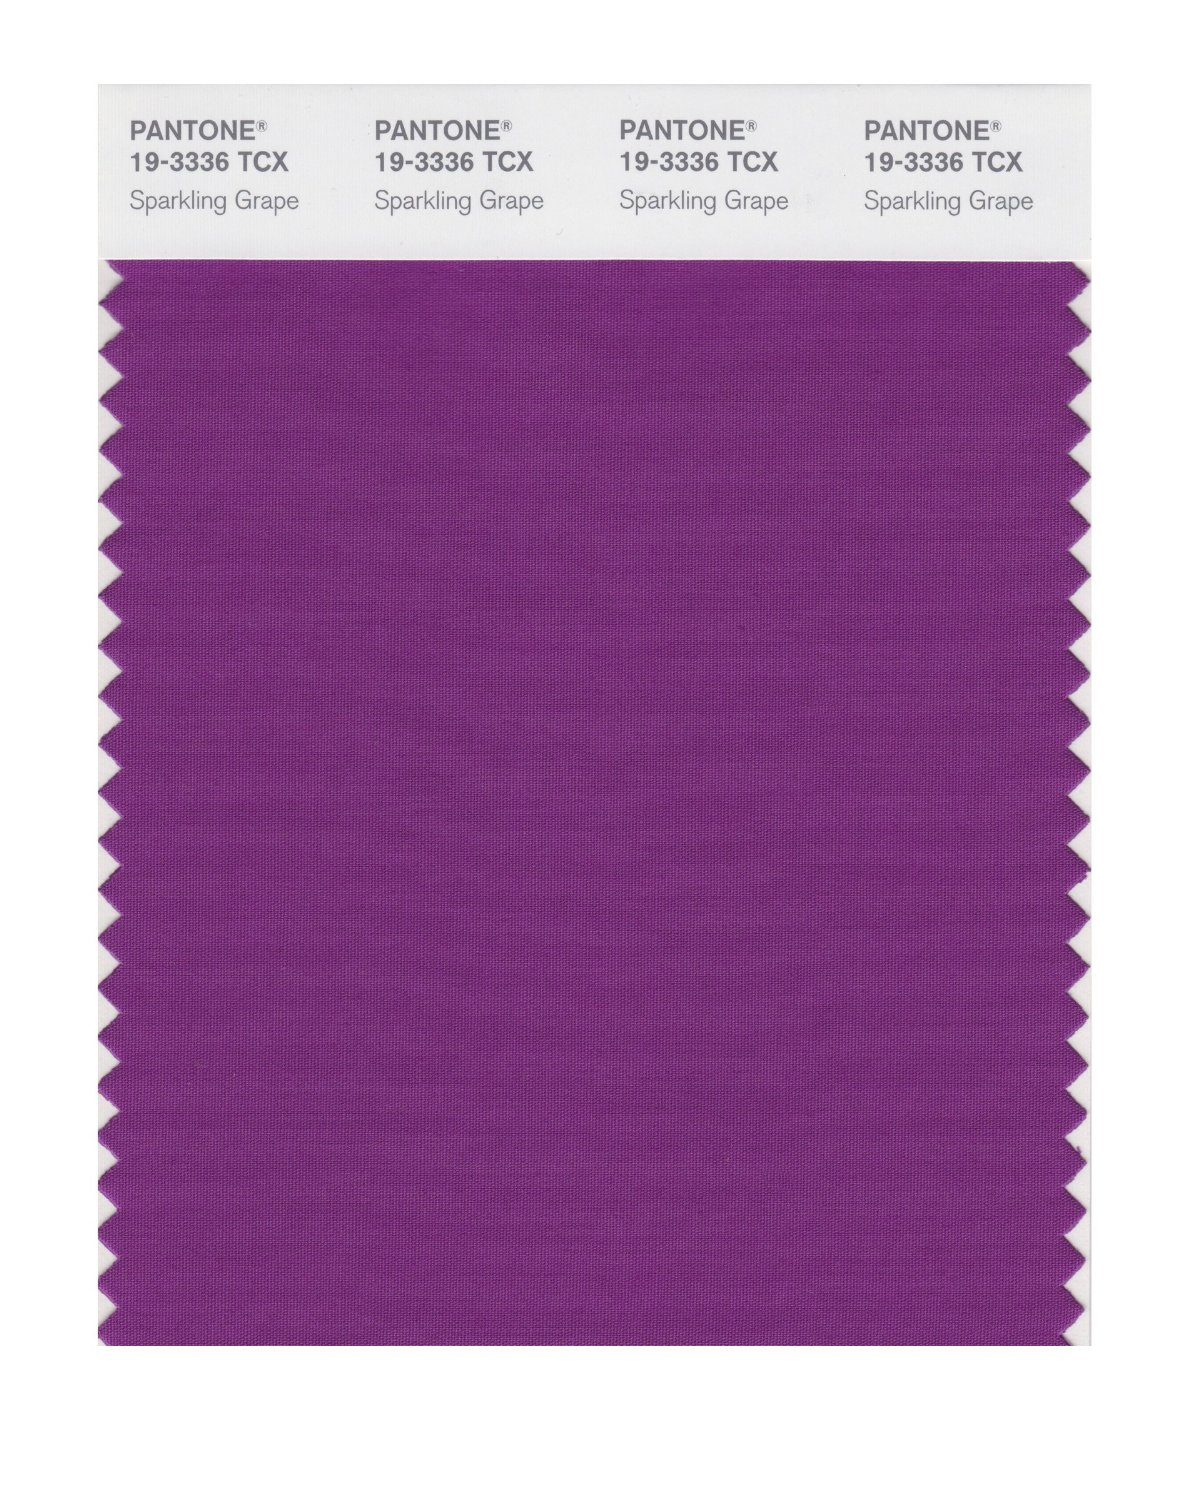 Pantone Smart Swatch 19-3336 Sparkling Grape